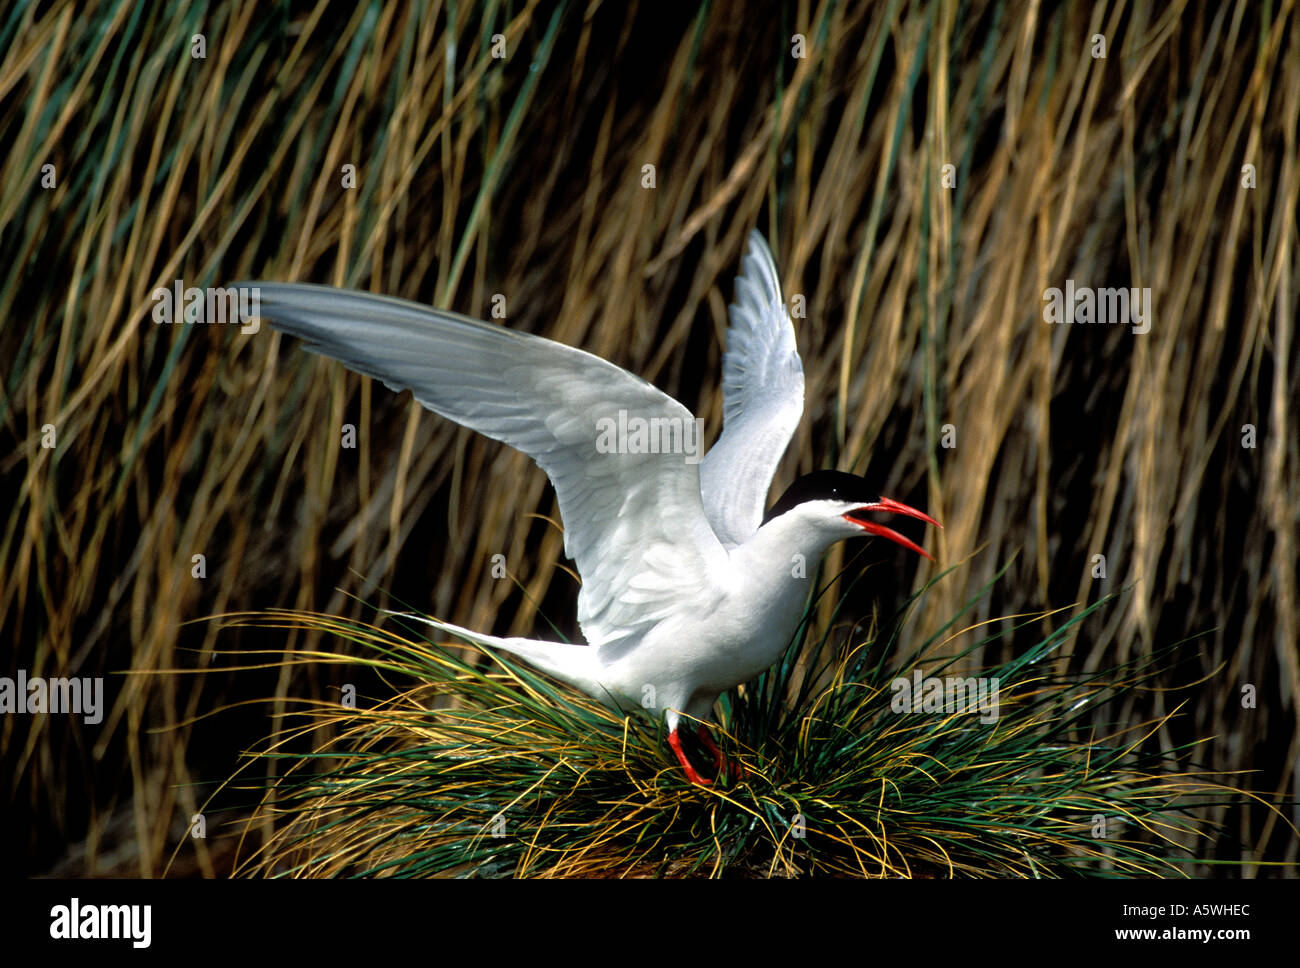 BT2-26 FLAPPING SOUTH AMERICAN TERN - Stock Image